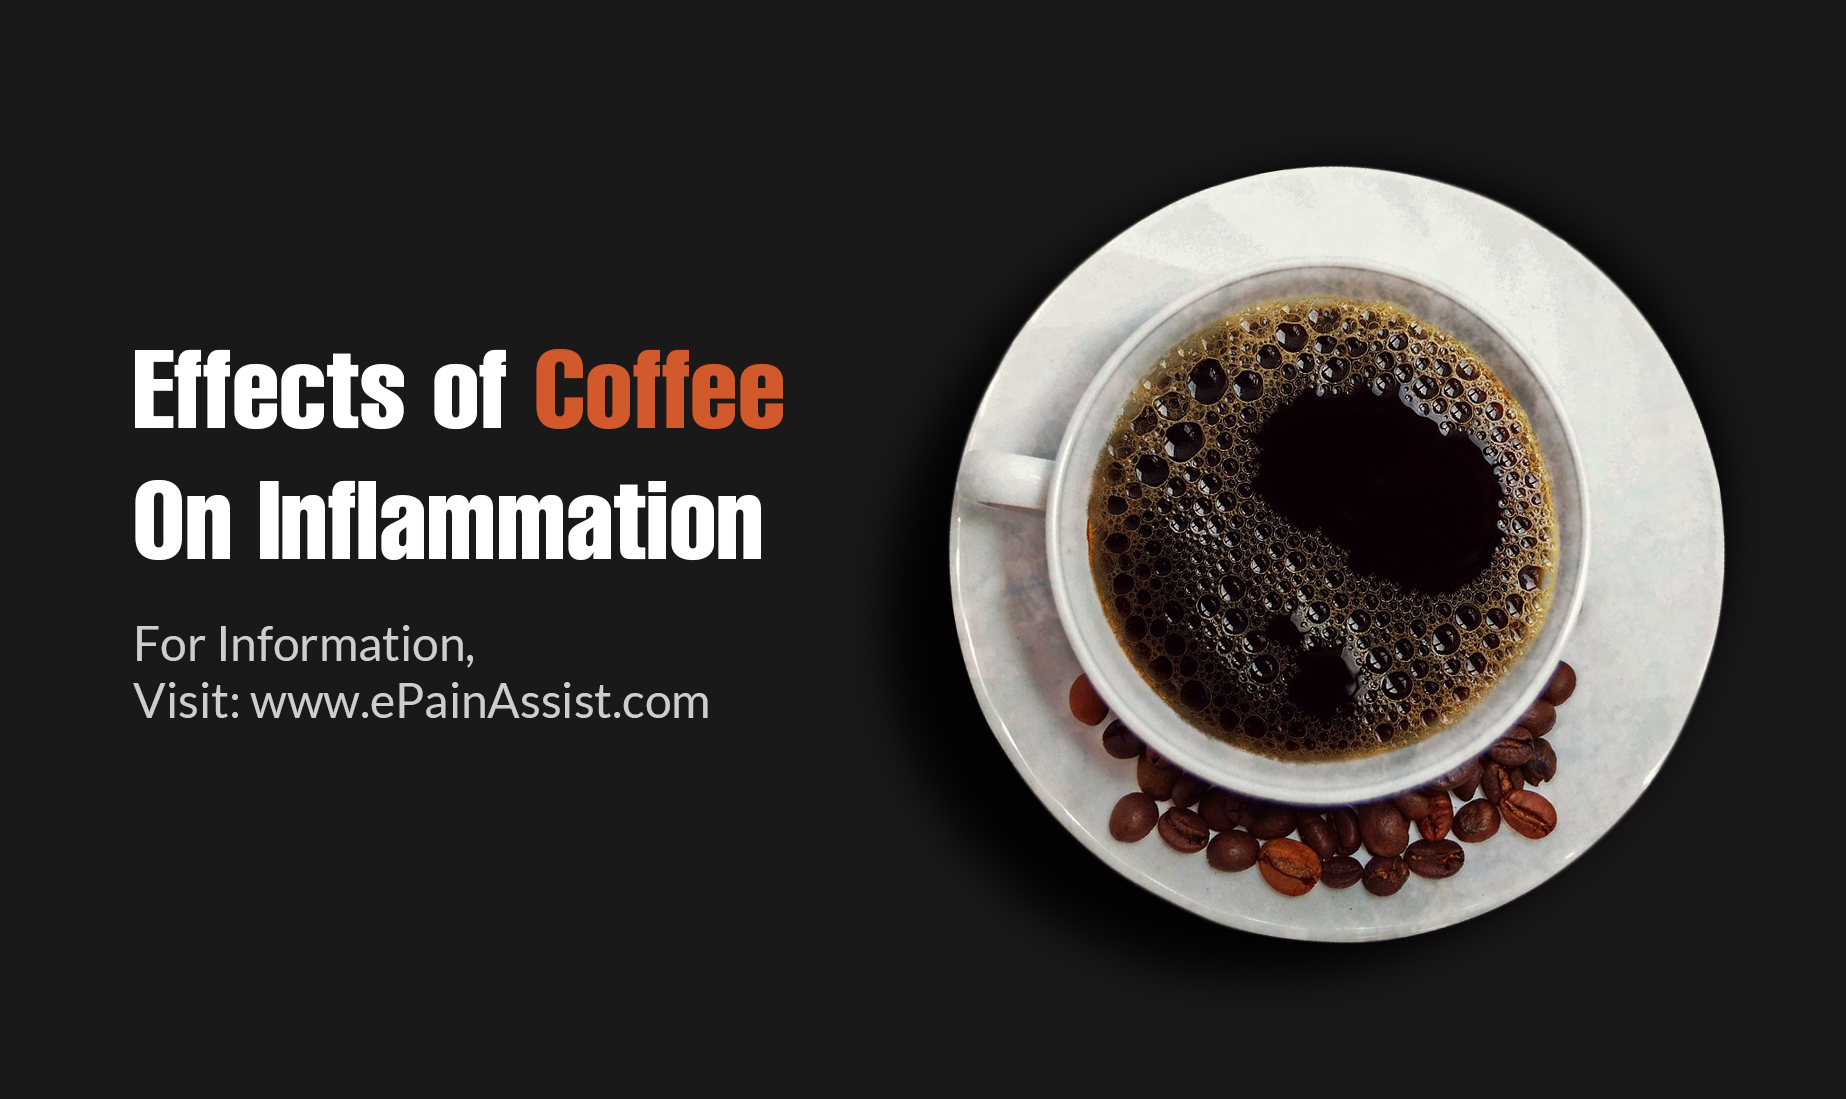 Effects of Coffee On Inflammation